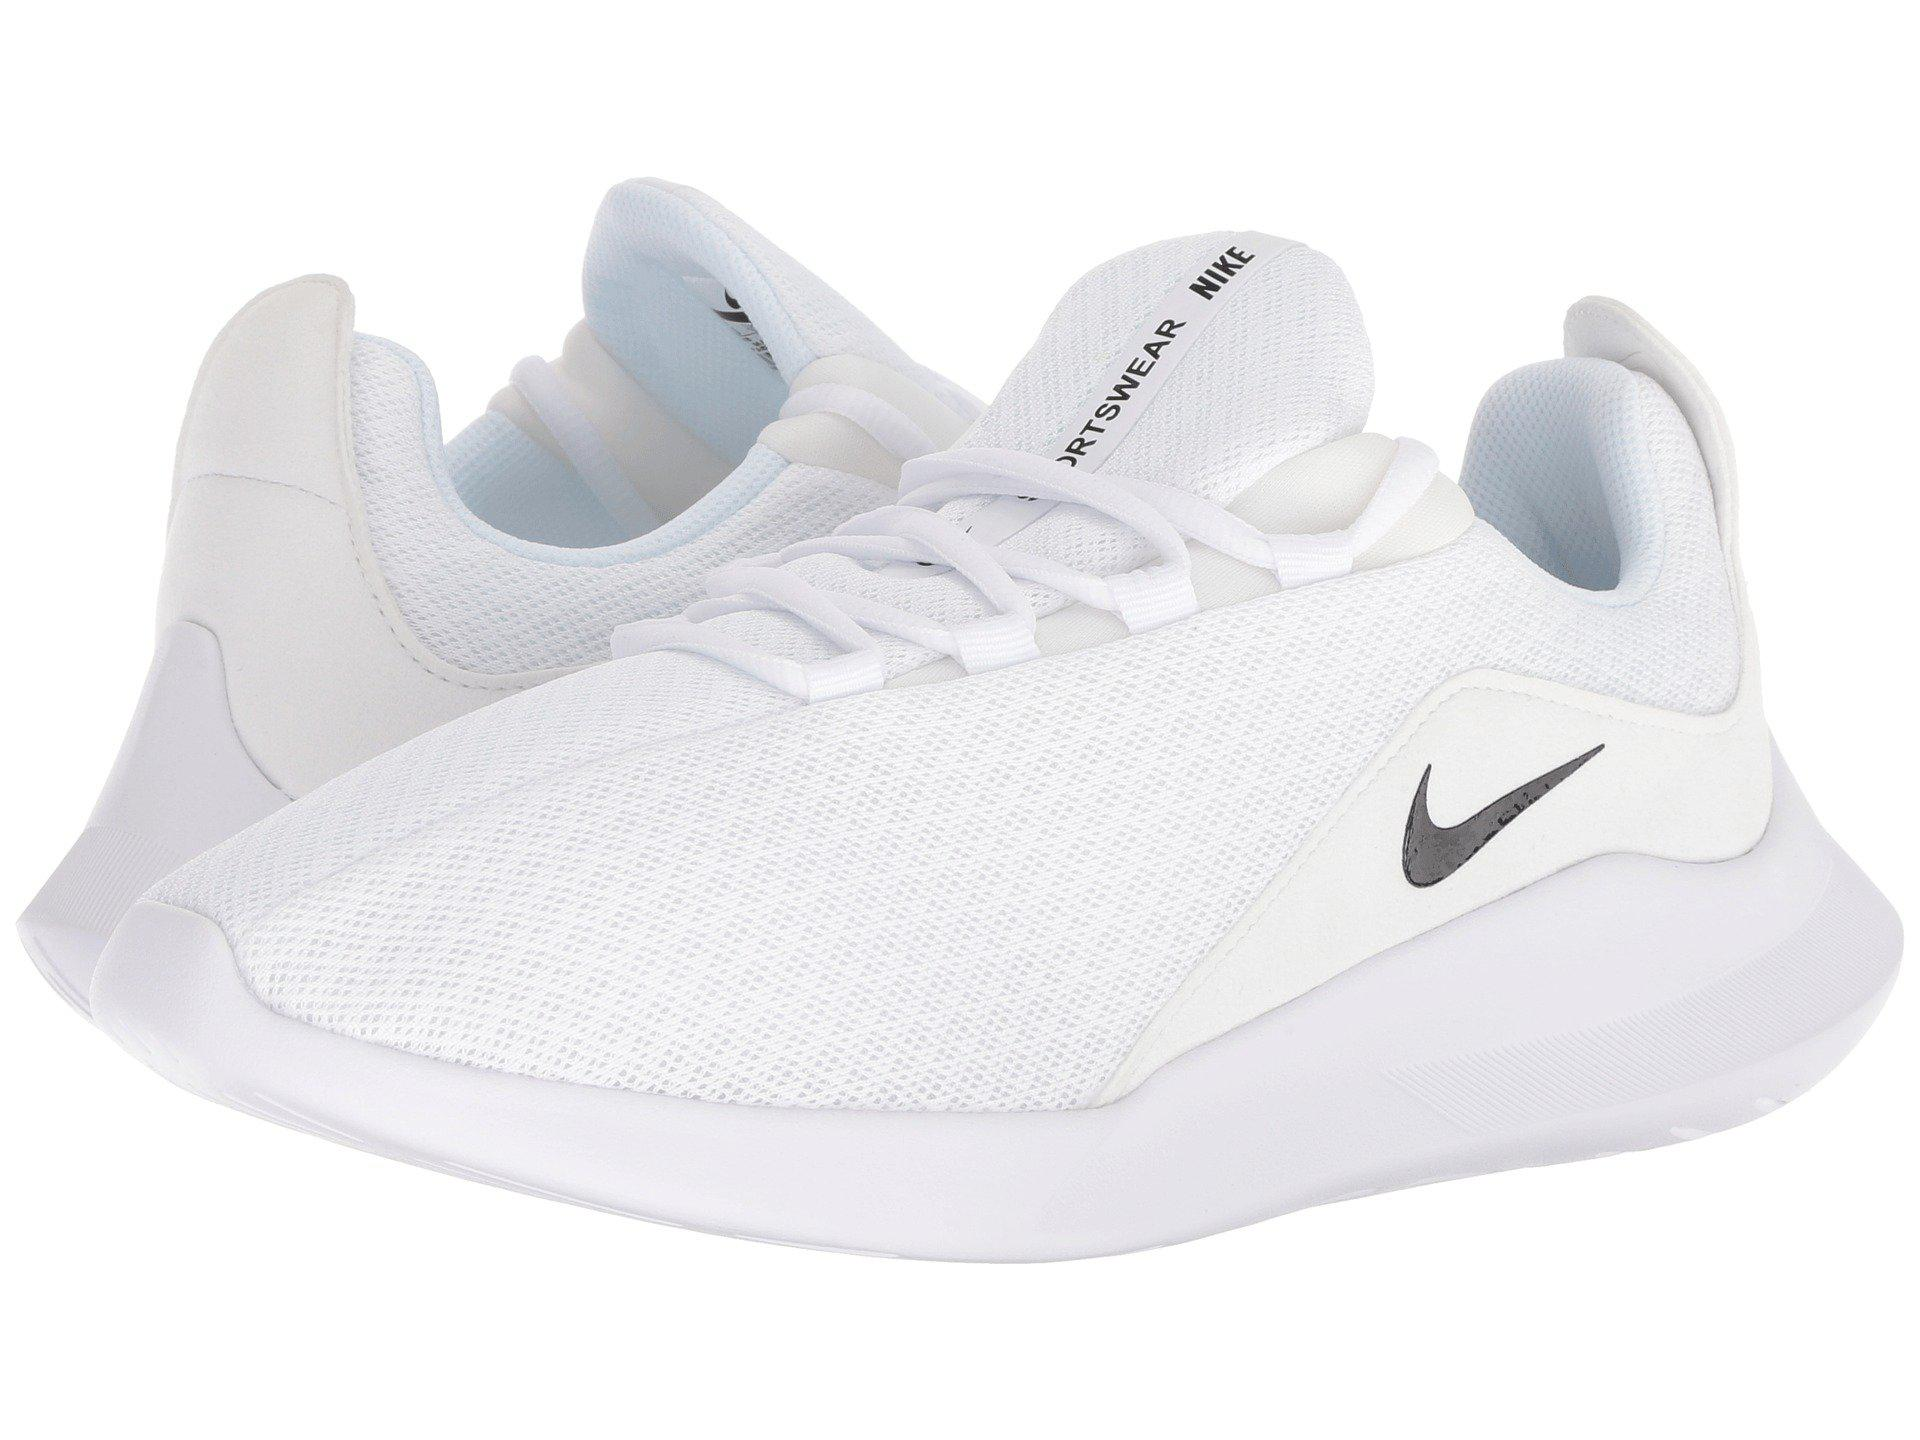 on sale c74a8 74212 Nike Viale (white black) Men s Shoes in White for Men - Lyst